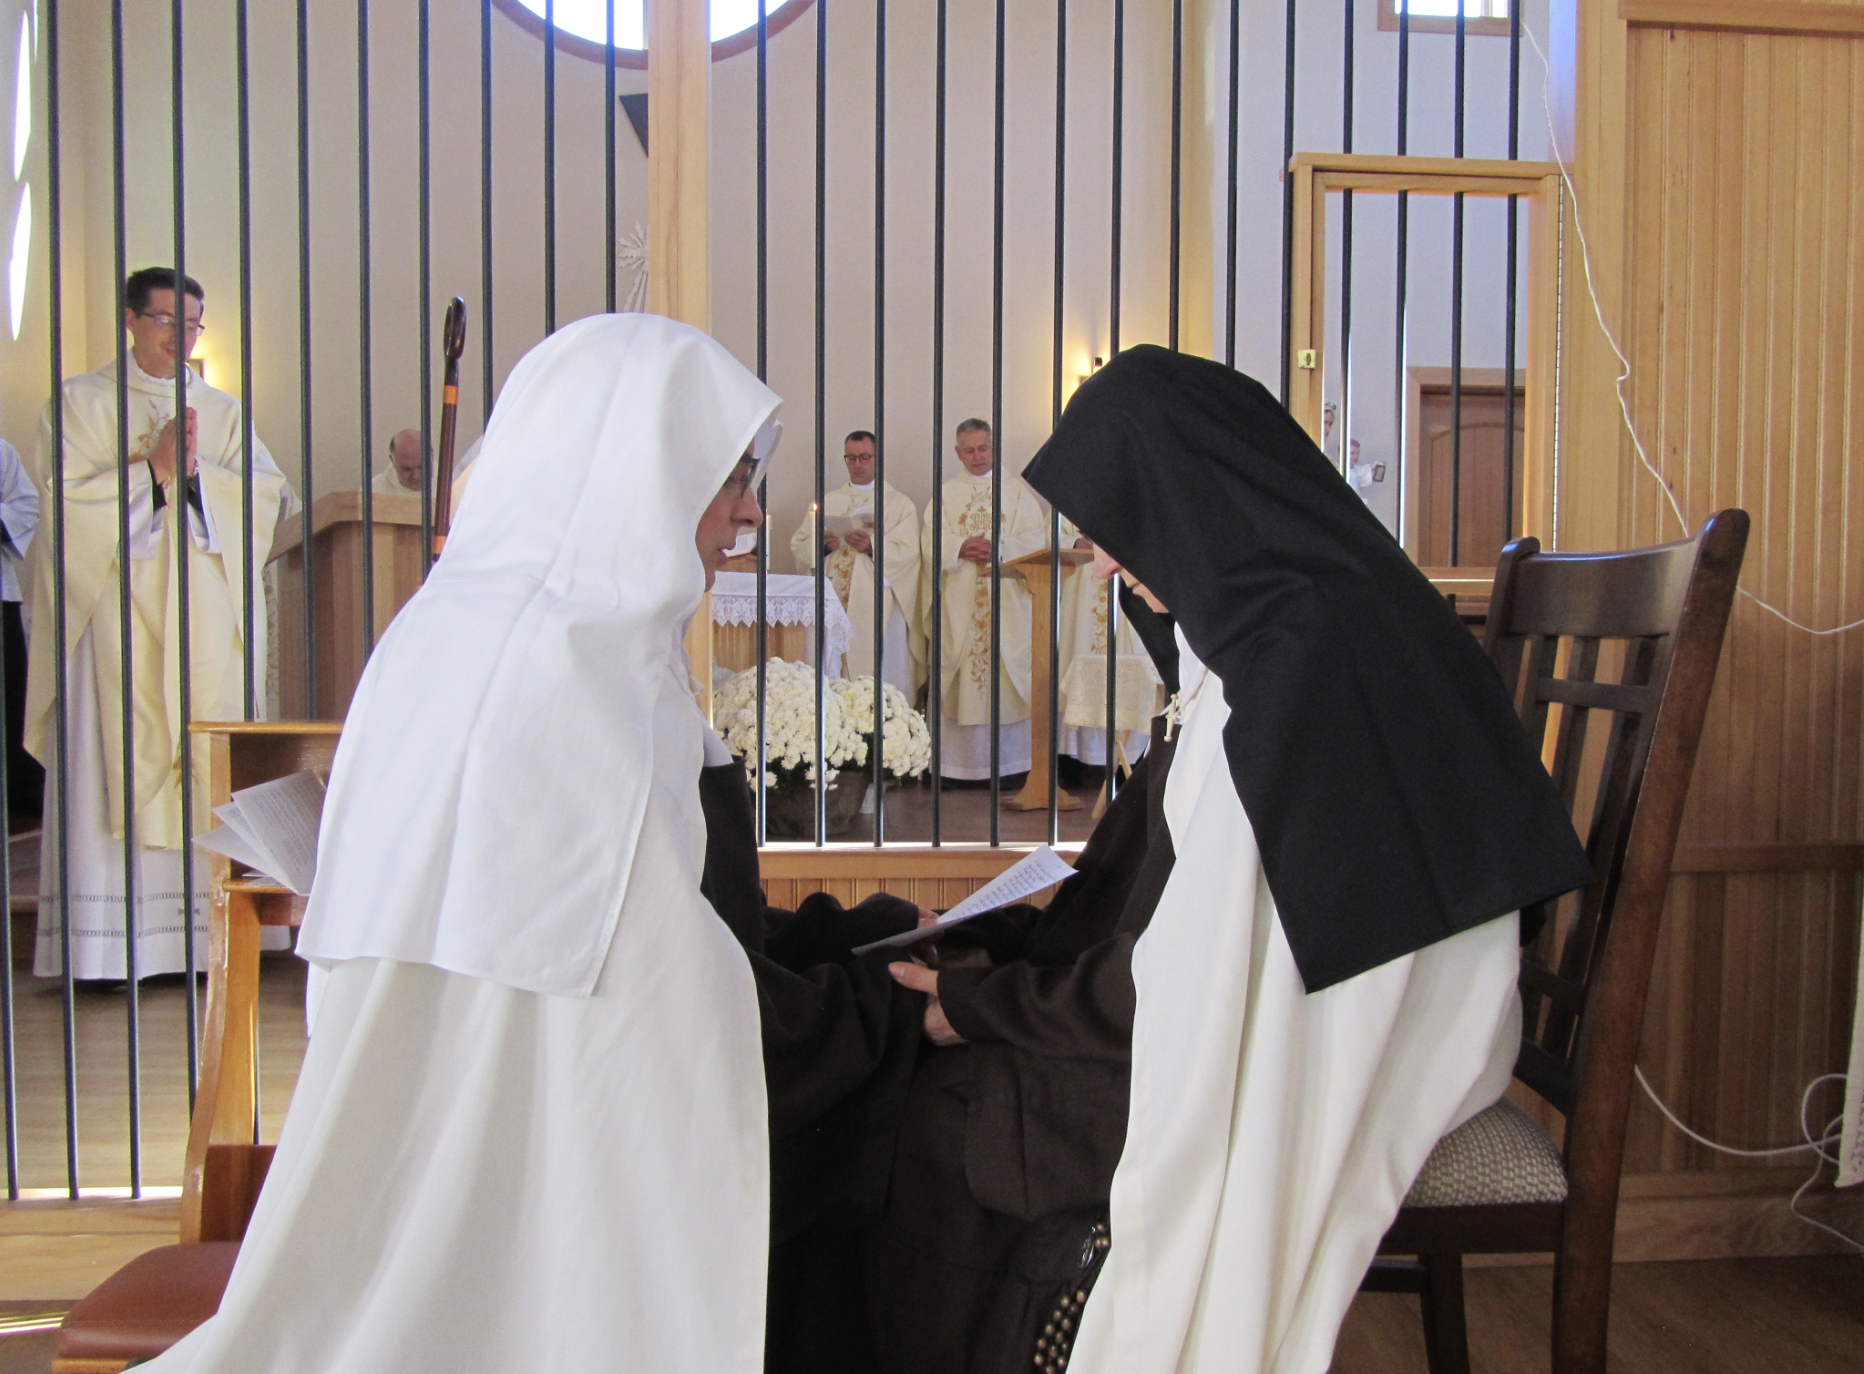 Discalced Carmelites of Armstrong — Cloistered Life